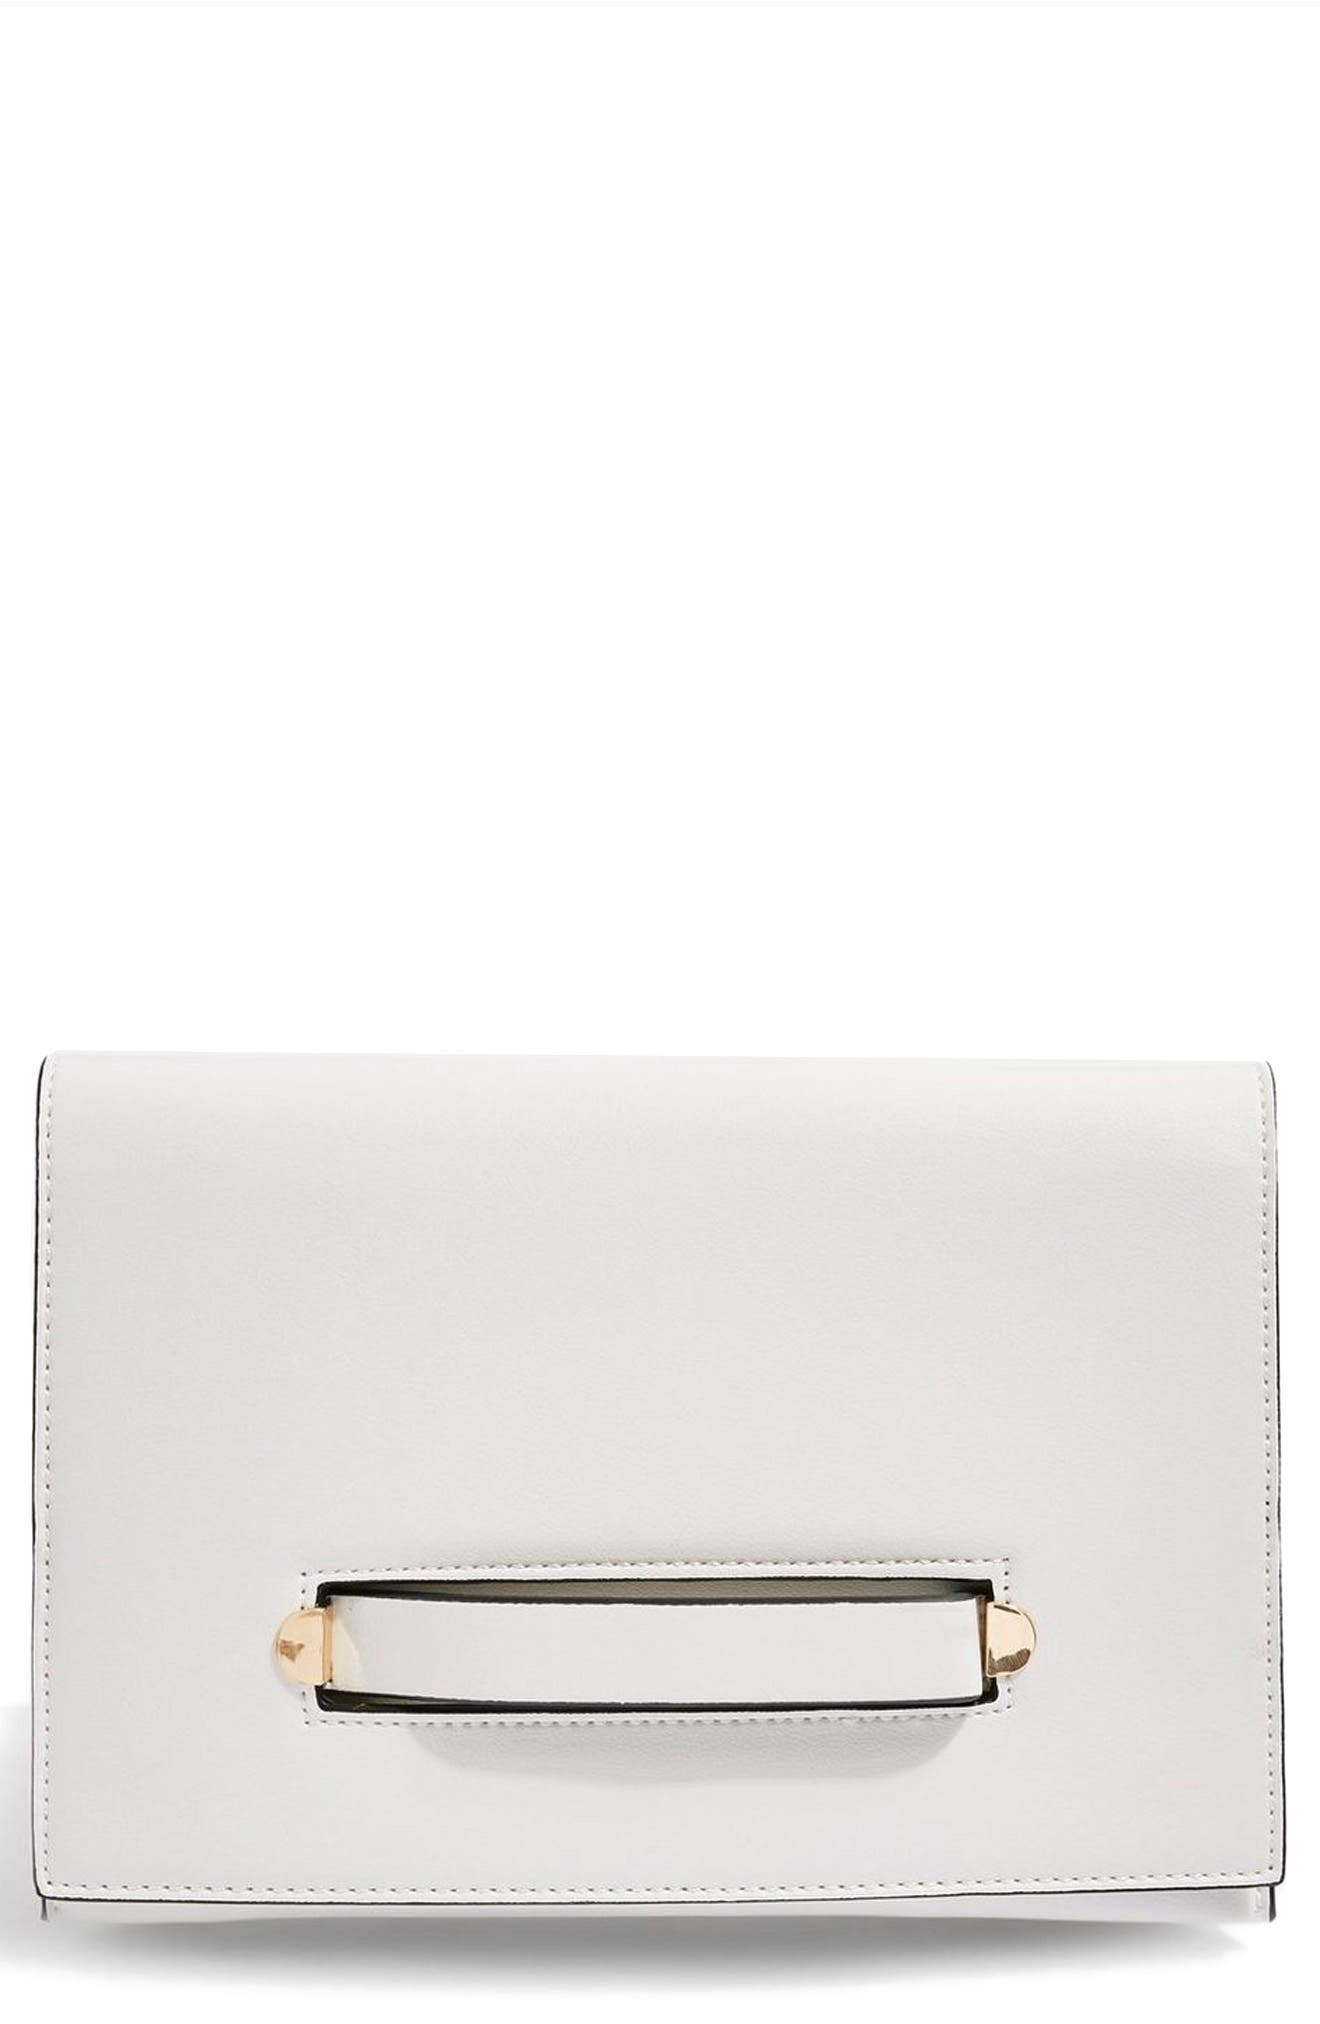 Brogan Tab Chain Clutch Bag,                             Main thumbnail 1, color,                             White